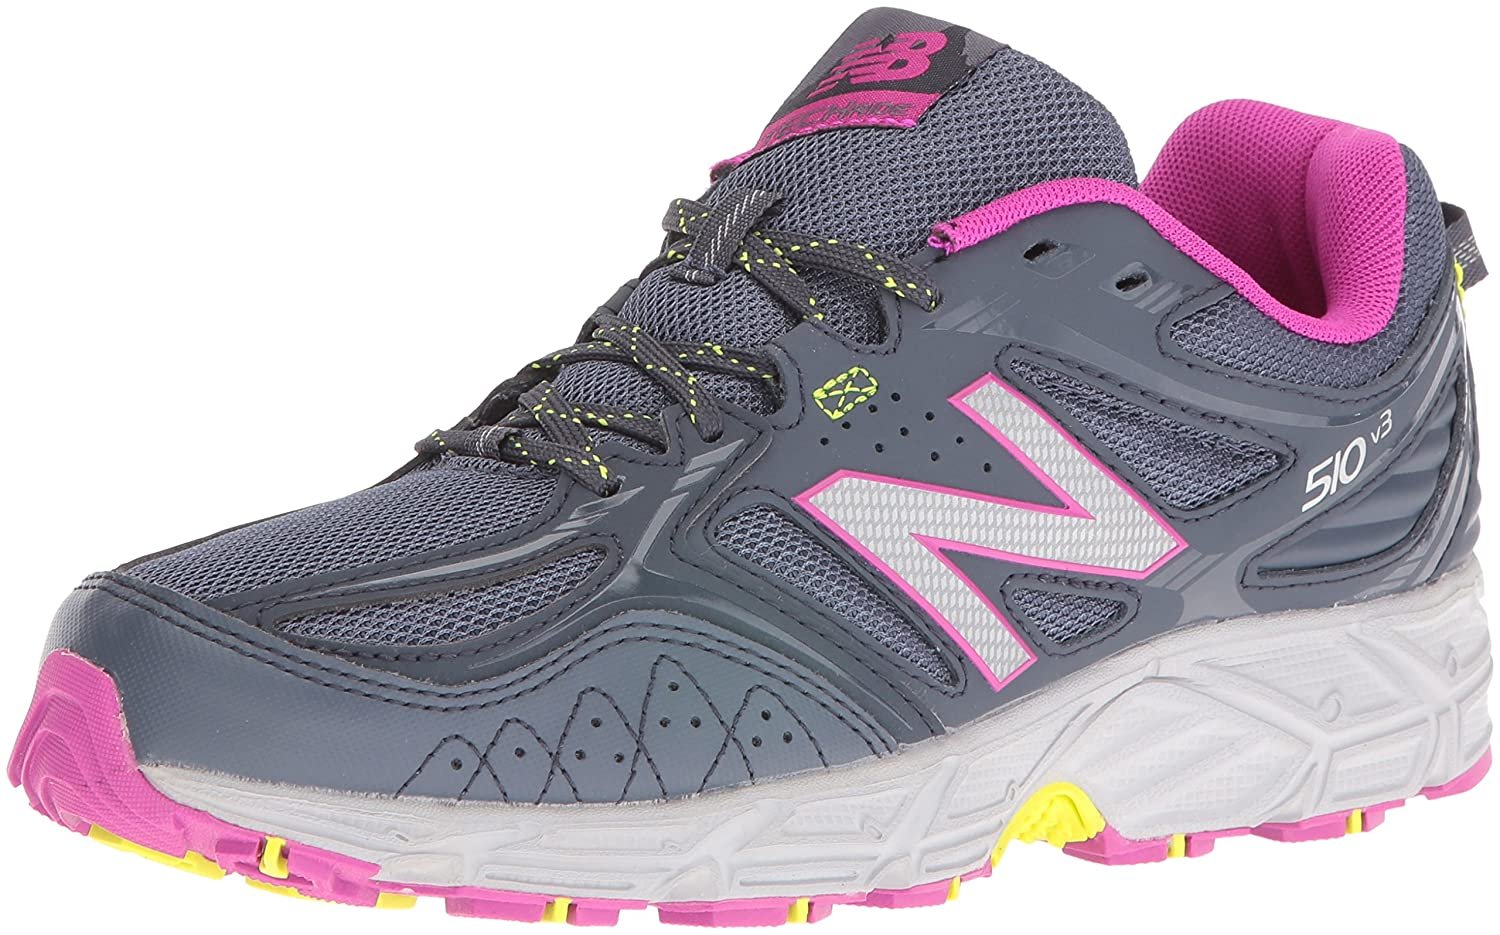 New Balance Women's WT510RS3 Trail Running Shoes B01CQVOMRC 5.5 W US|Dark Grey